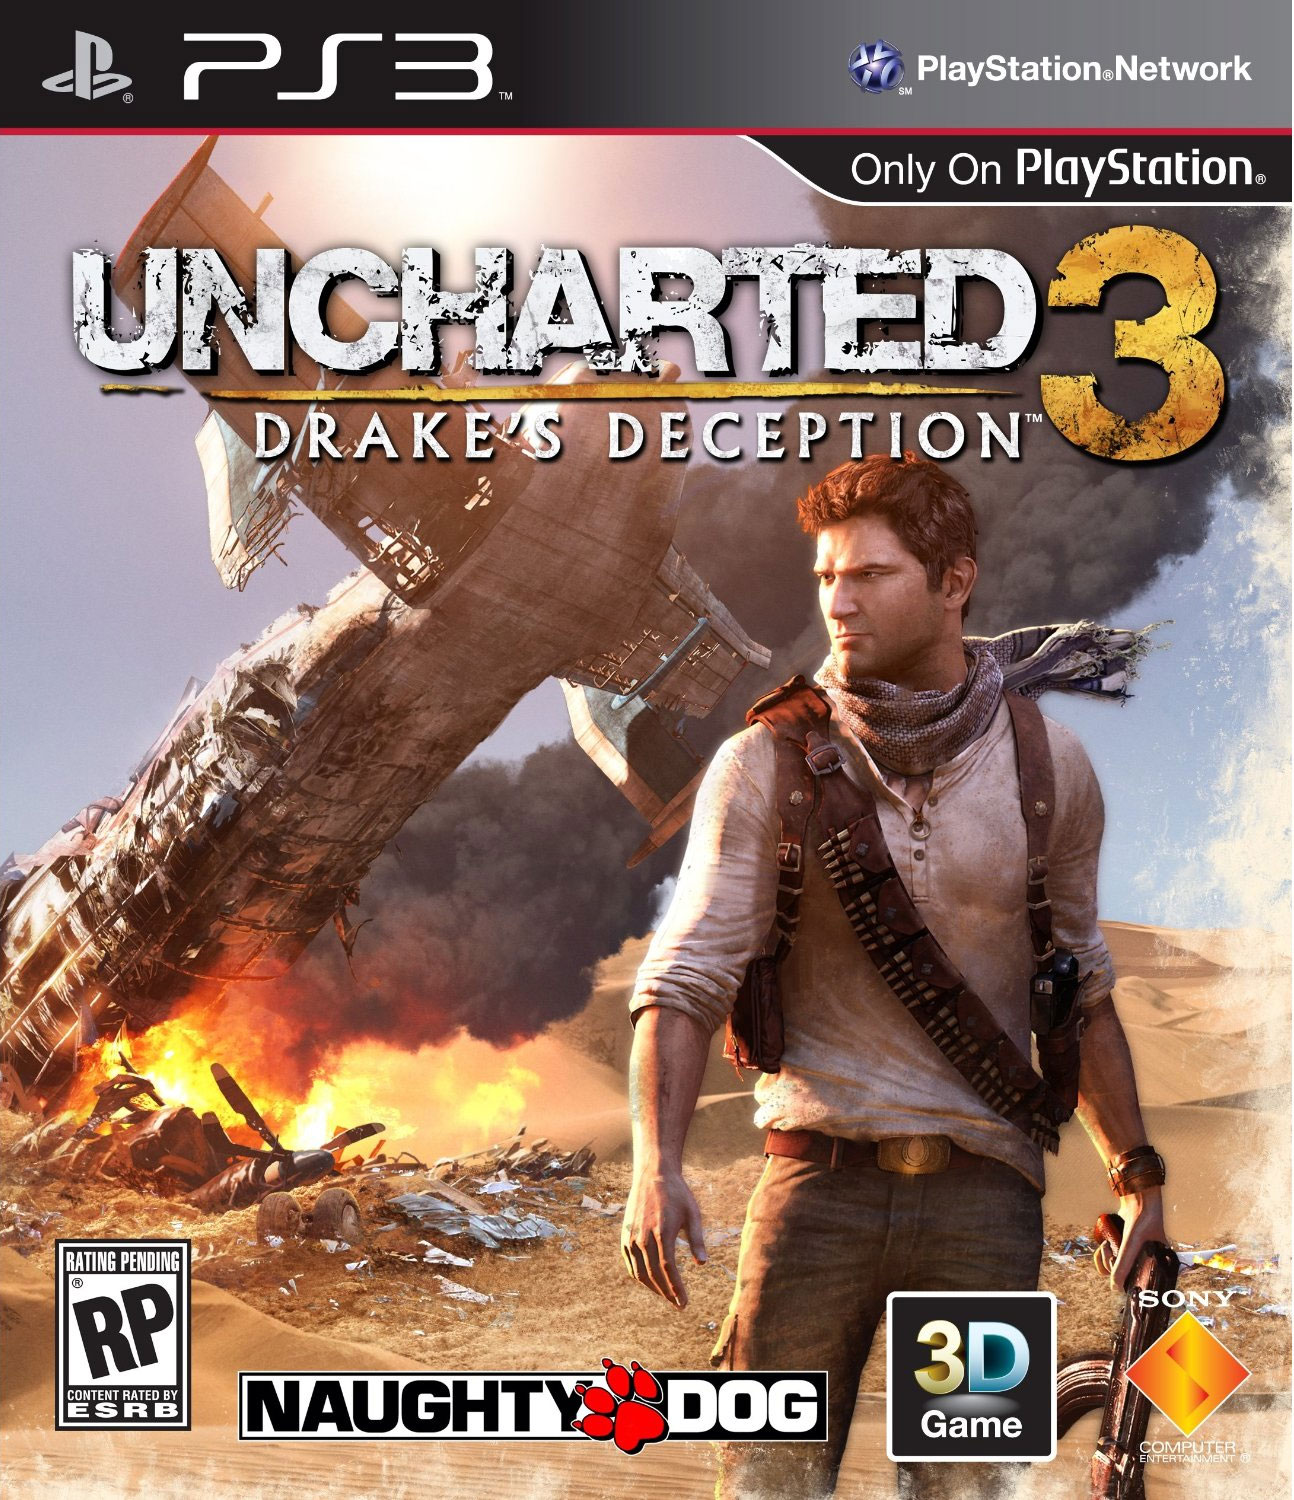 Uncharted 3 Playstation 3 | 1